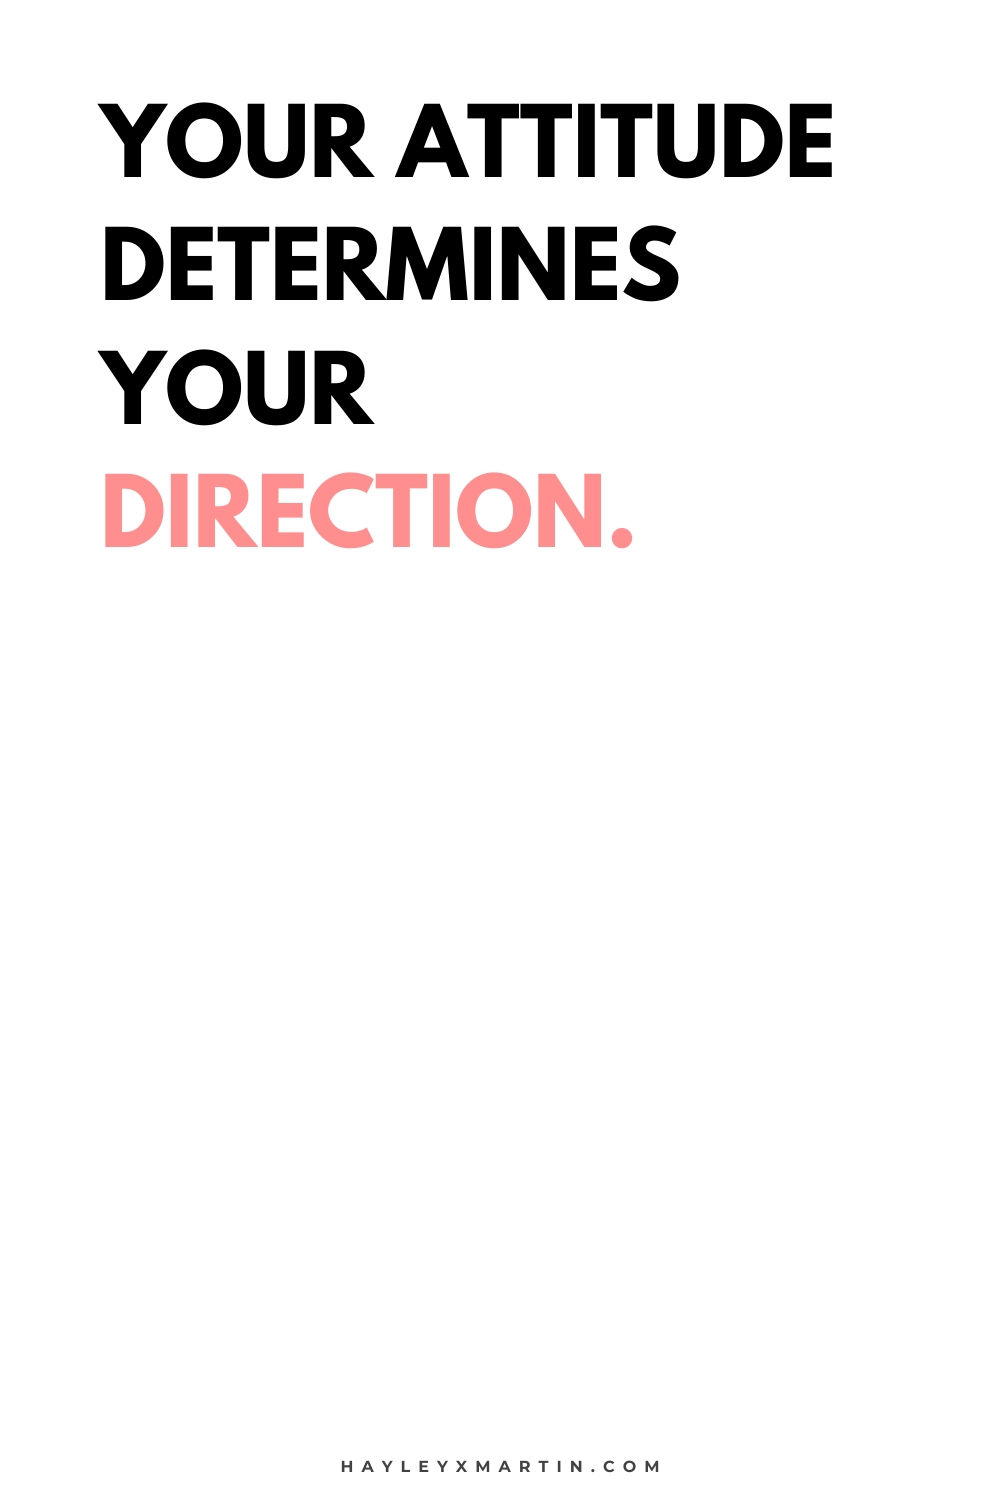 YOUR ATTITUDE DETERMINES YOUR DIRECTION. | HAYLEYXMARTIN.COM